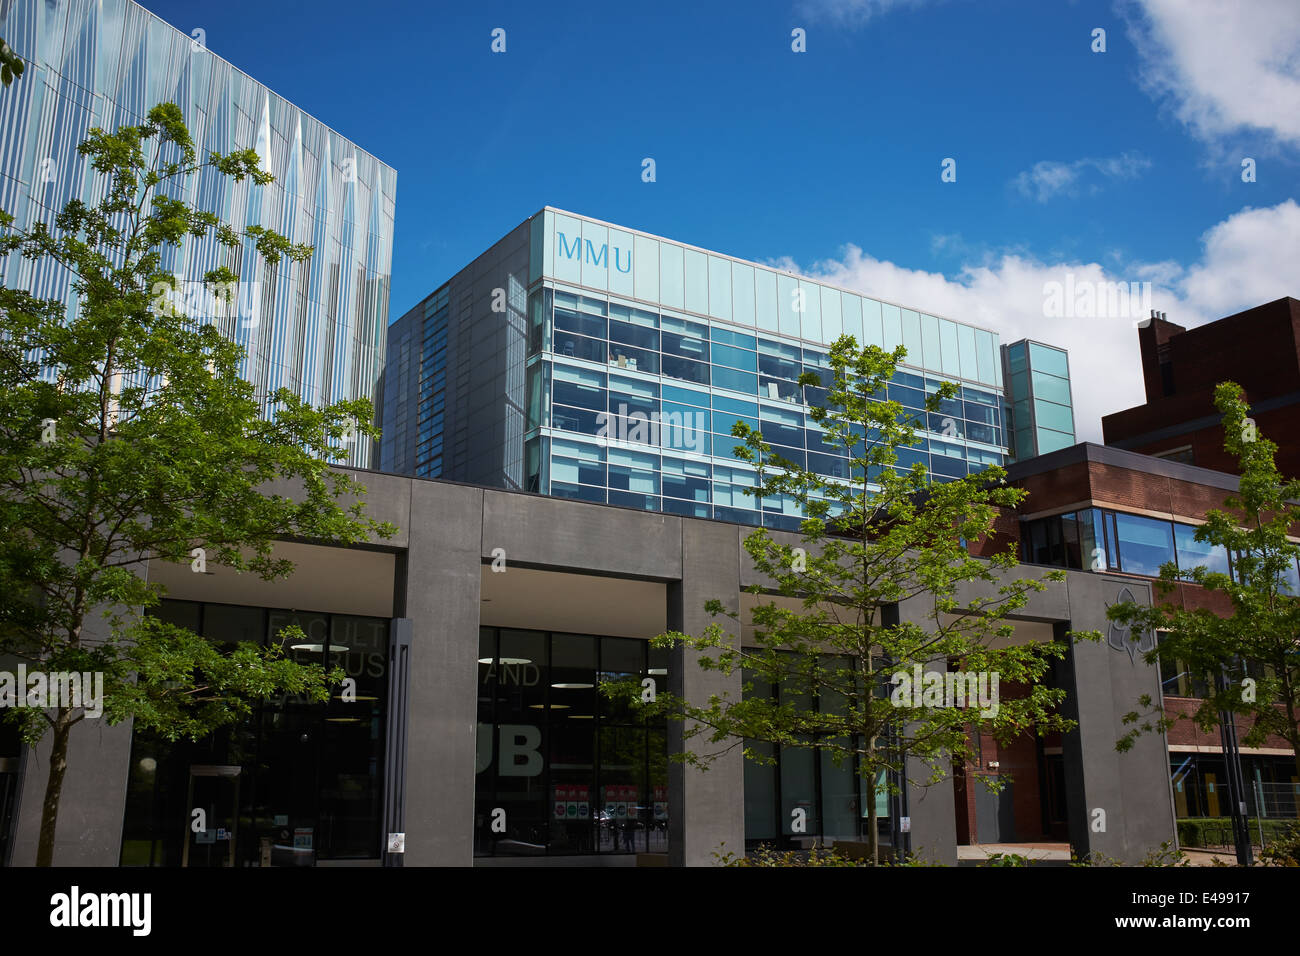 Entrance to the Faculty of Business and Law at Manchester Metropolitan University UK - Stock Image